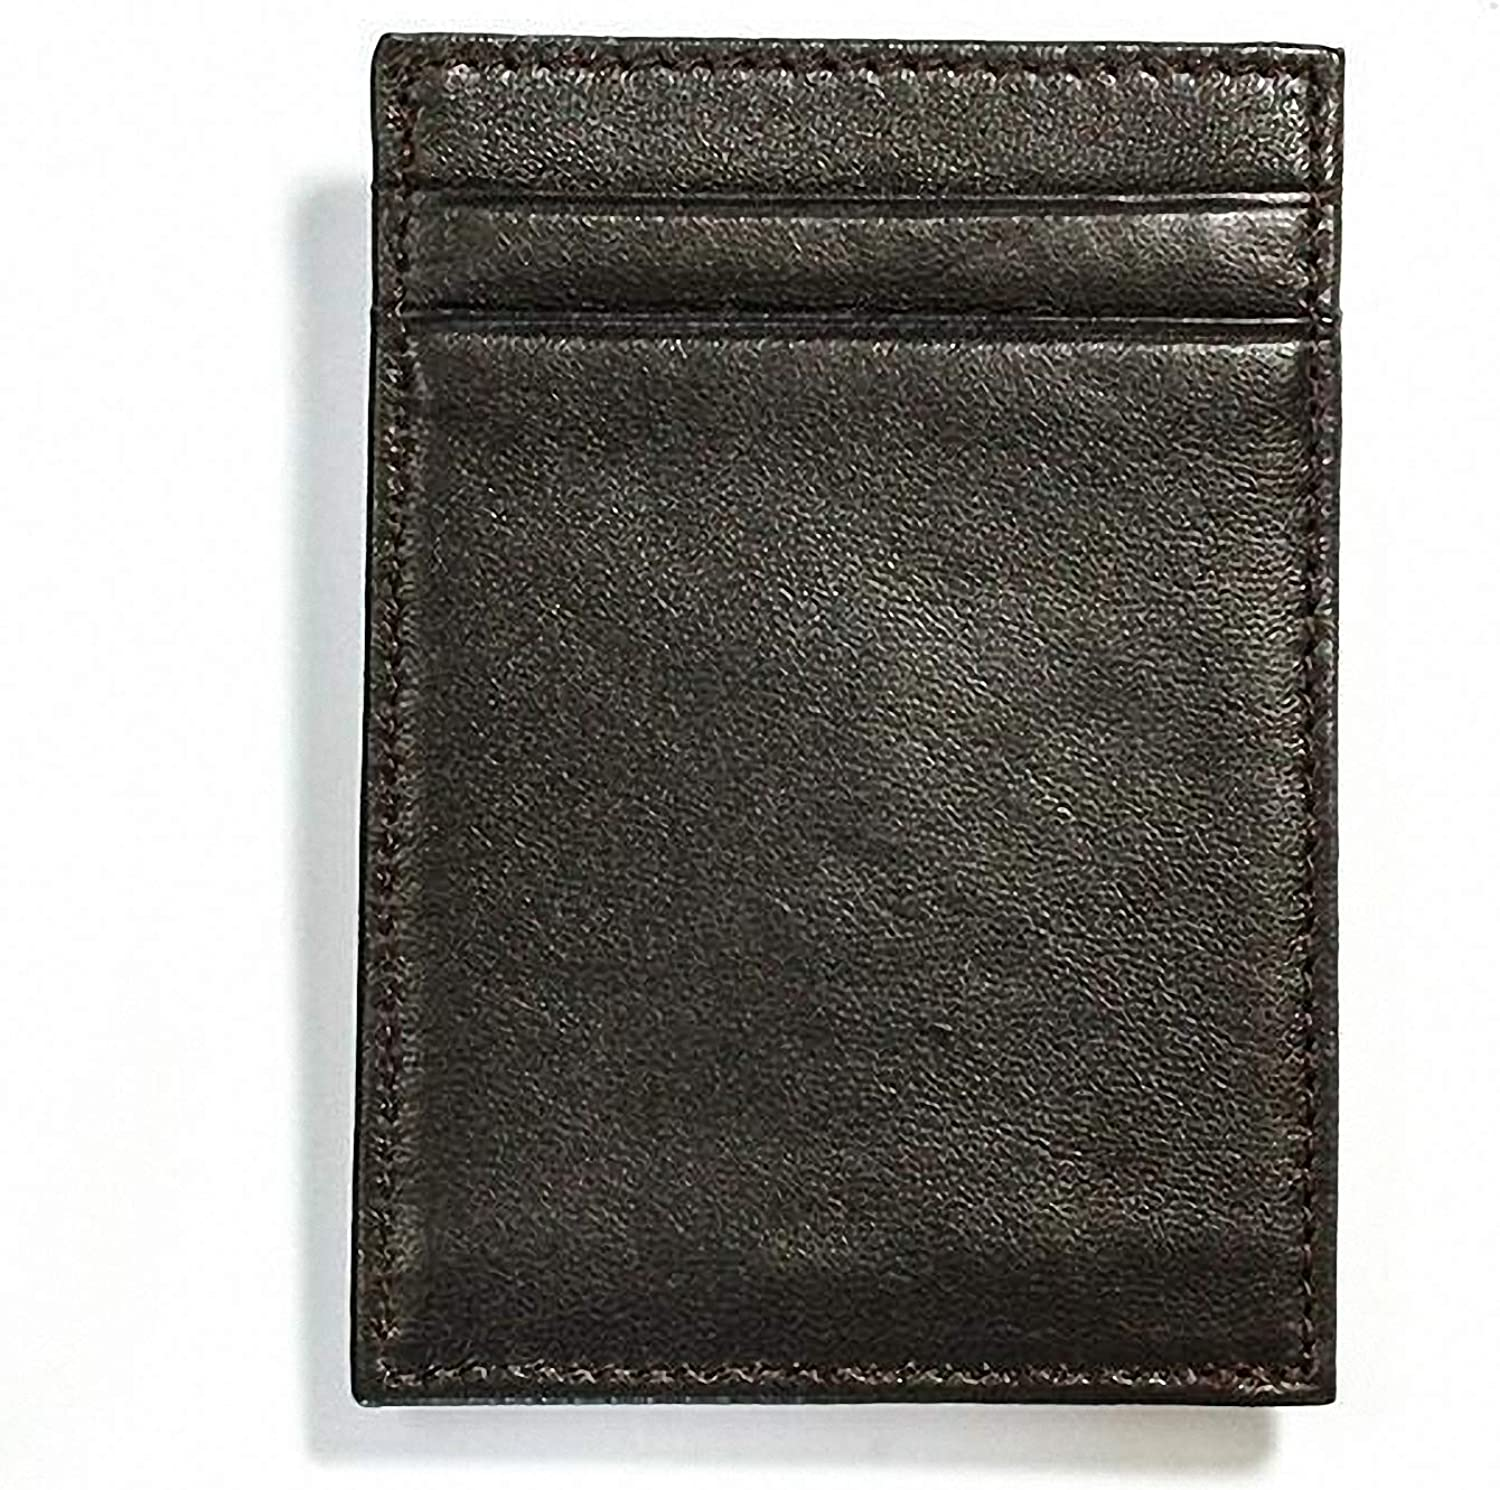 Cabretta Leather Wallet with Extra Capacity